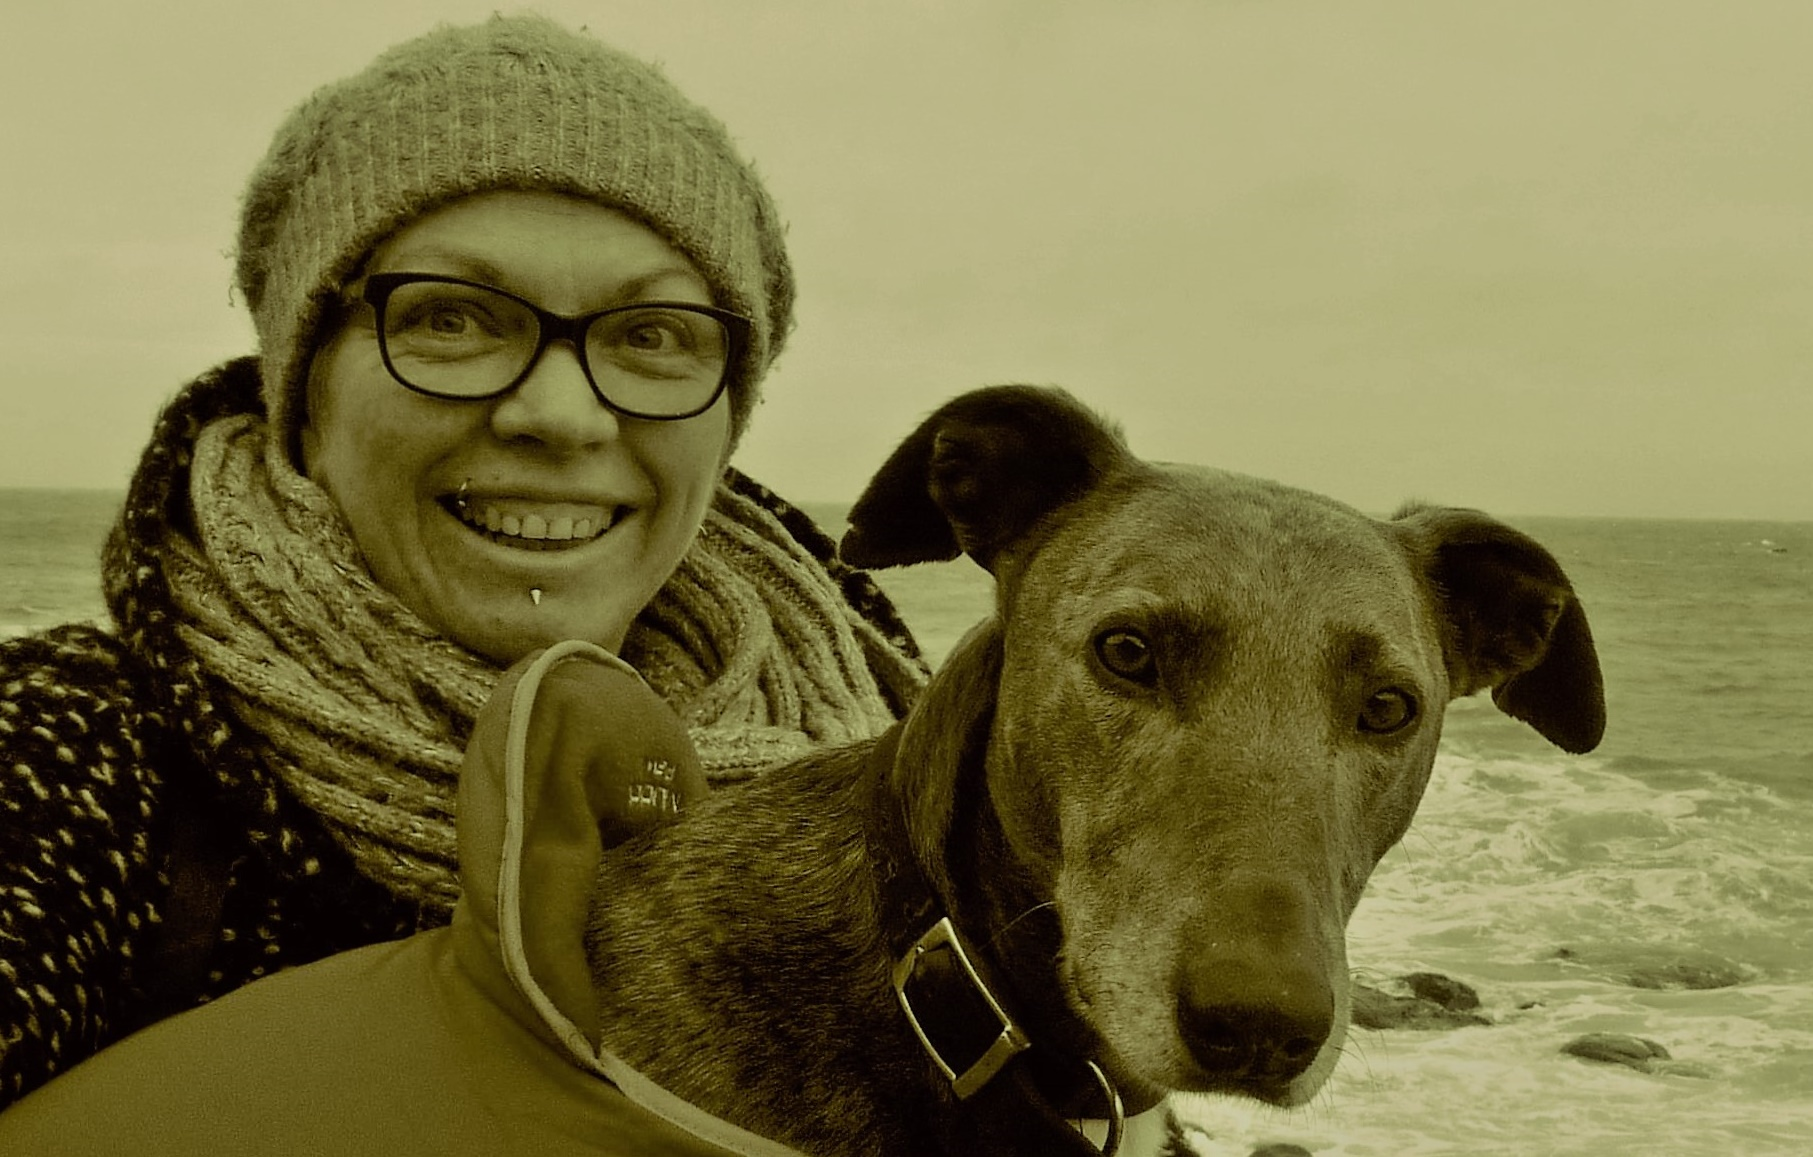 Clare Emery - Sales & MarketingAdam and Clare met on the waterways of England and share their boat with both a loyal Hound and a ship's Cat.